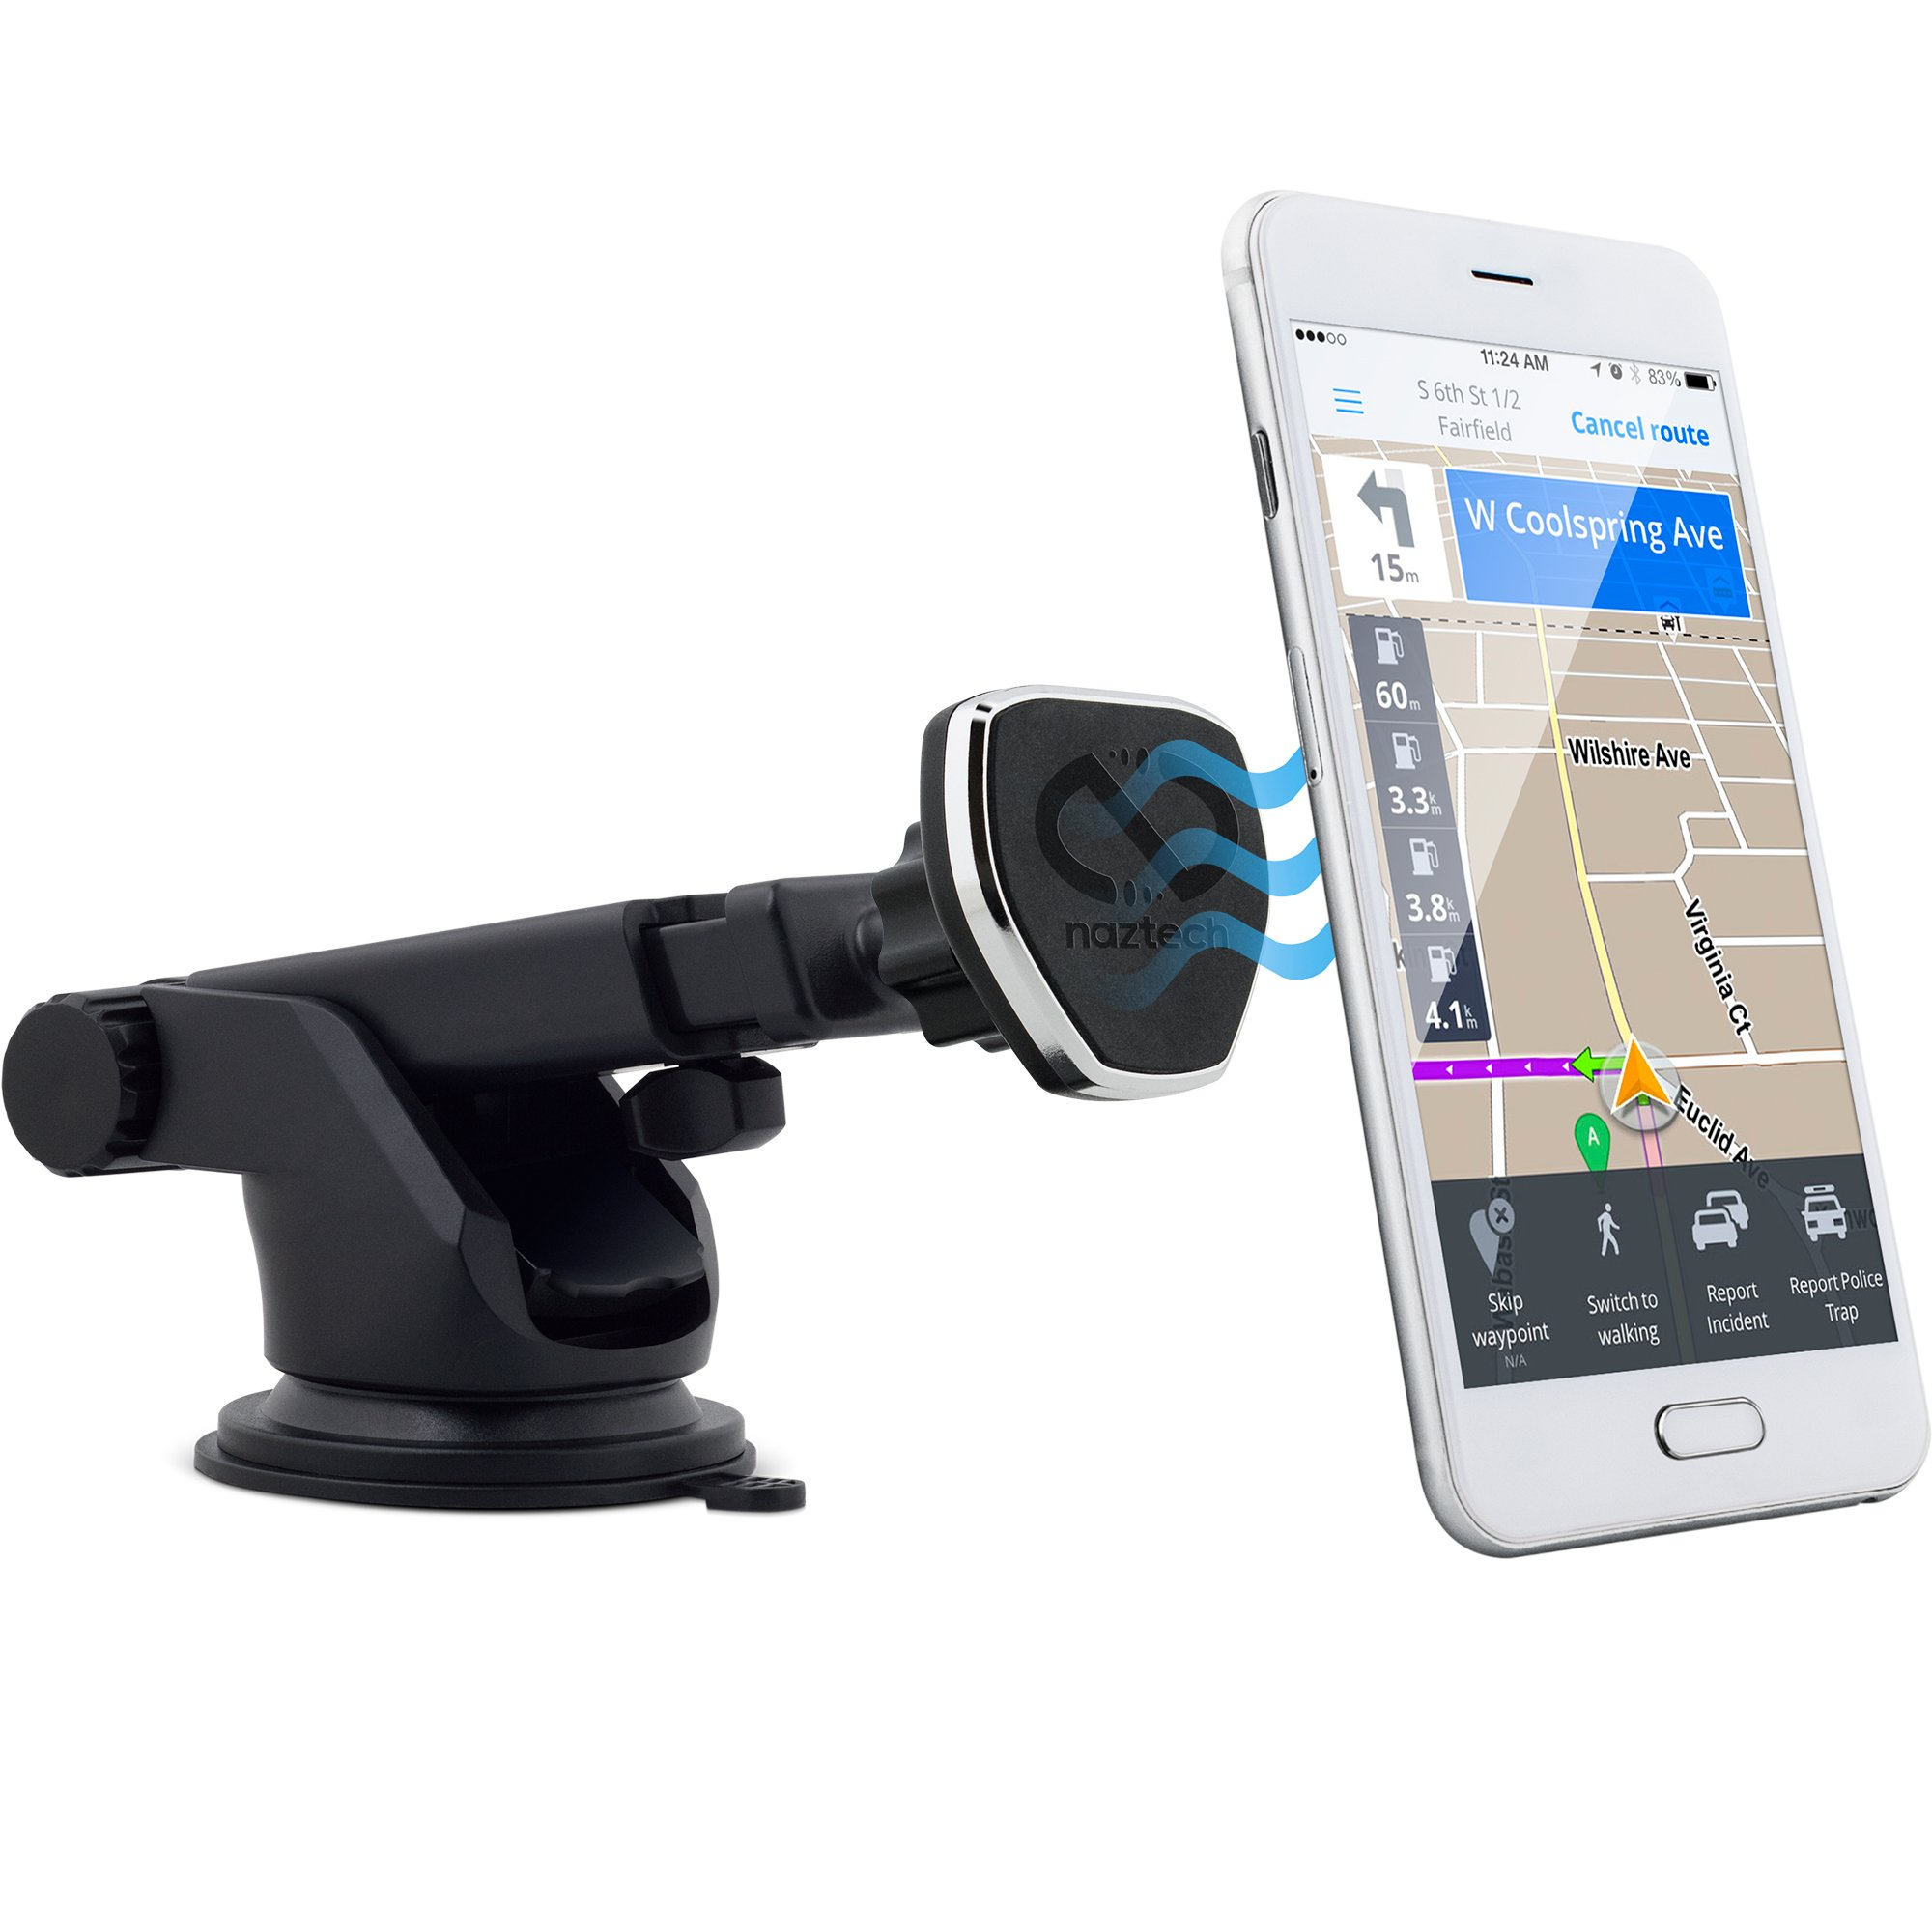 Naztech MagBuddy Dash Universal Magnetic Phone Car Mount, Fully Adjustable Telescopic Holder with Insta-Lock Technology for iPhone and Android Mobile Devices, Smartphones, Cell Phones, Tablets and GPS